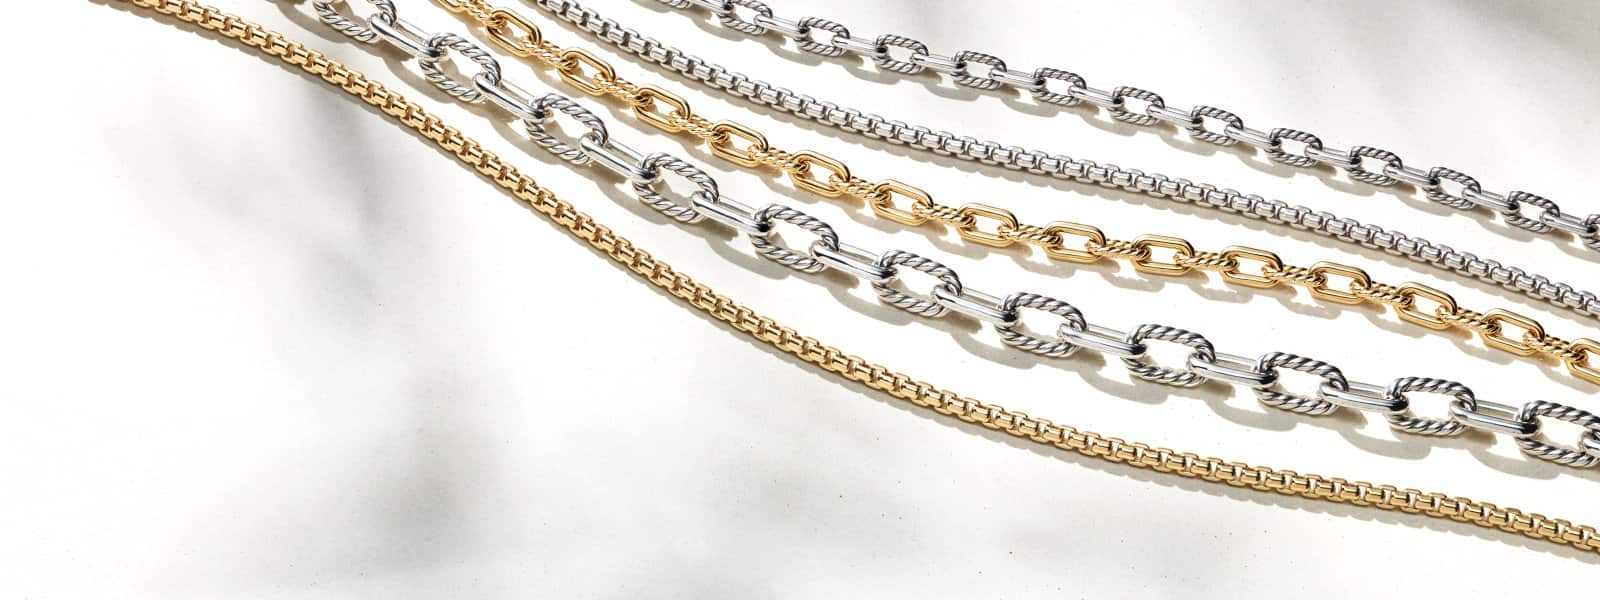 Diagonal rows of five David Yurman chain necklaces in sterling silver or 18K yellow gold on a white textured stone with long shadows.